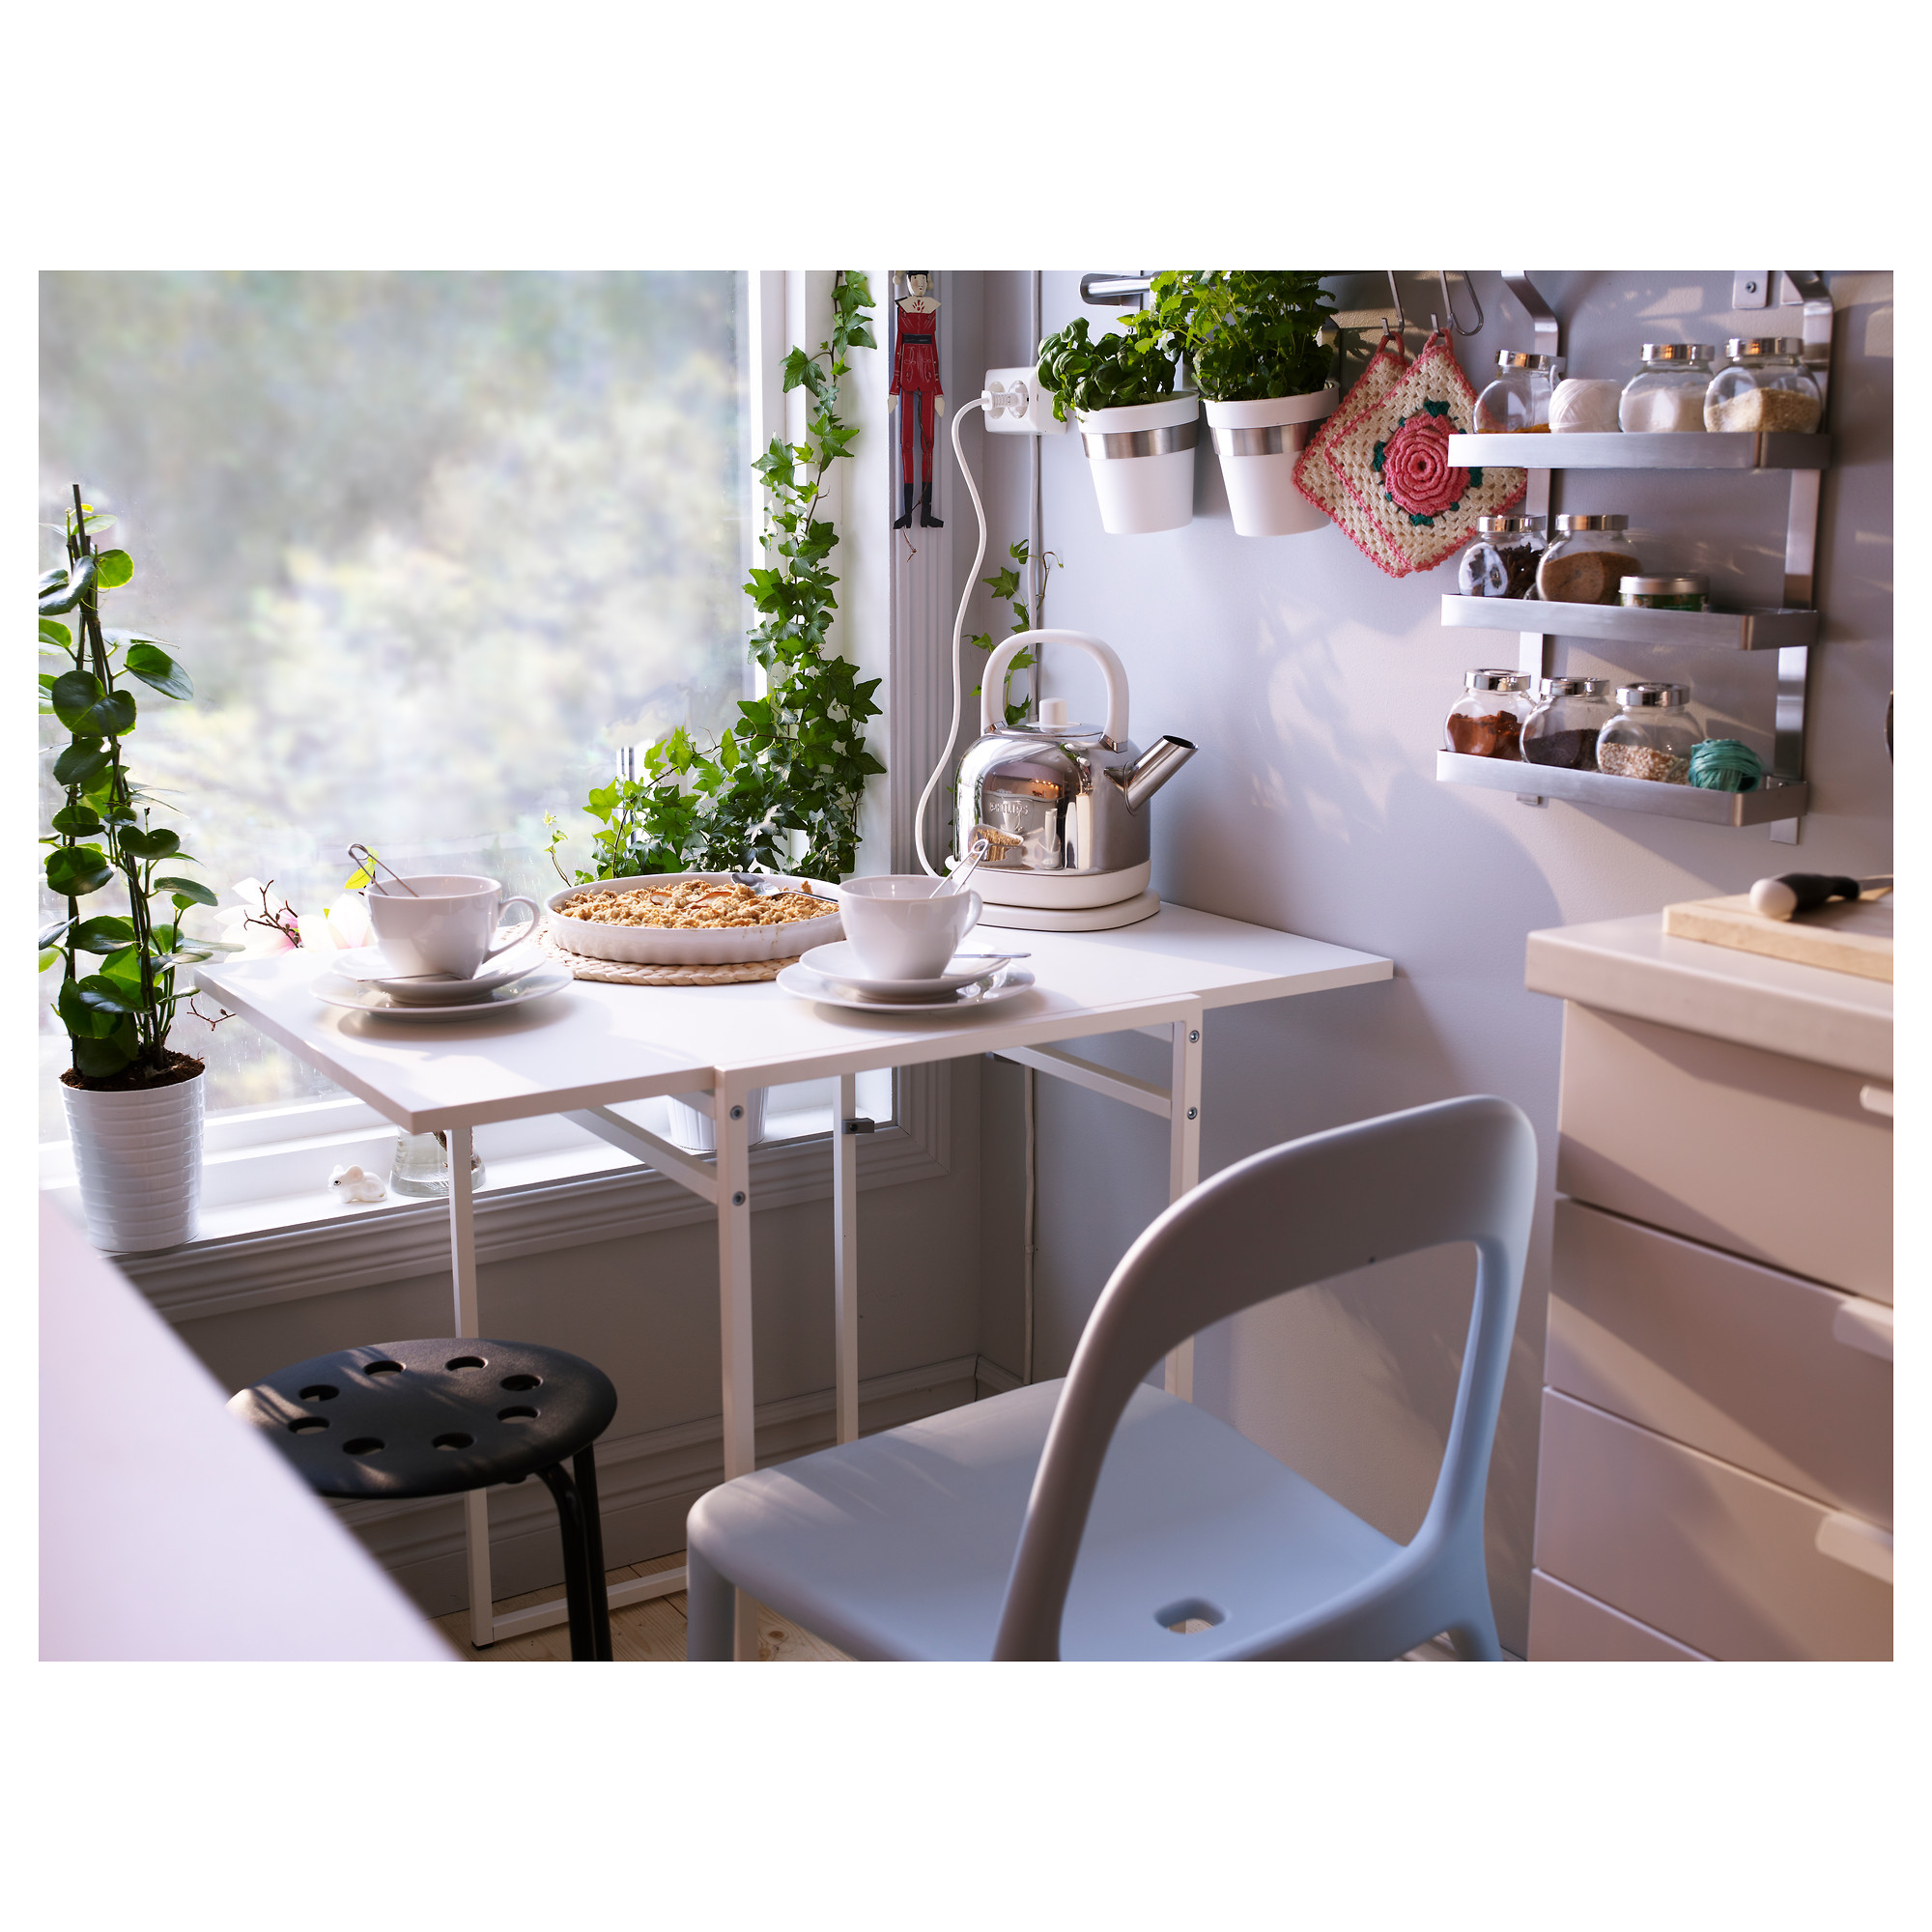 Muddus Drop Leaf Table White Ikea Hong Kong